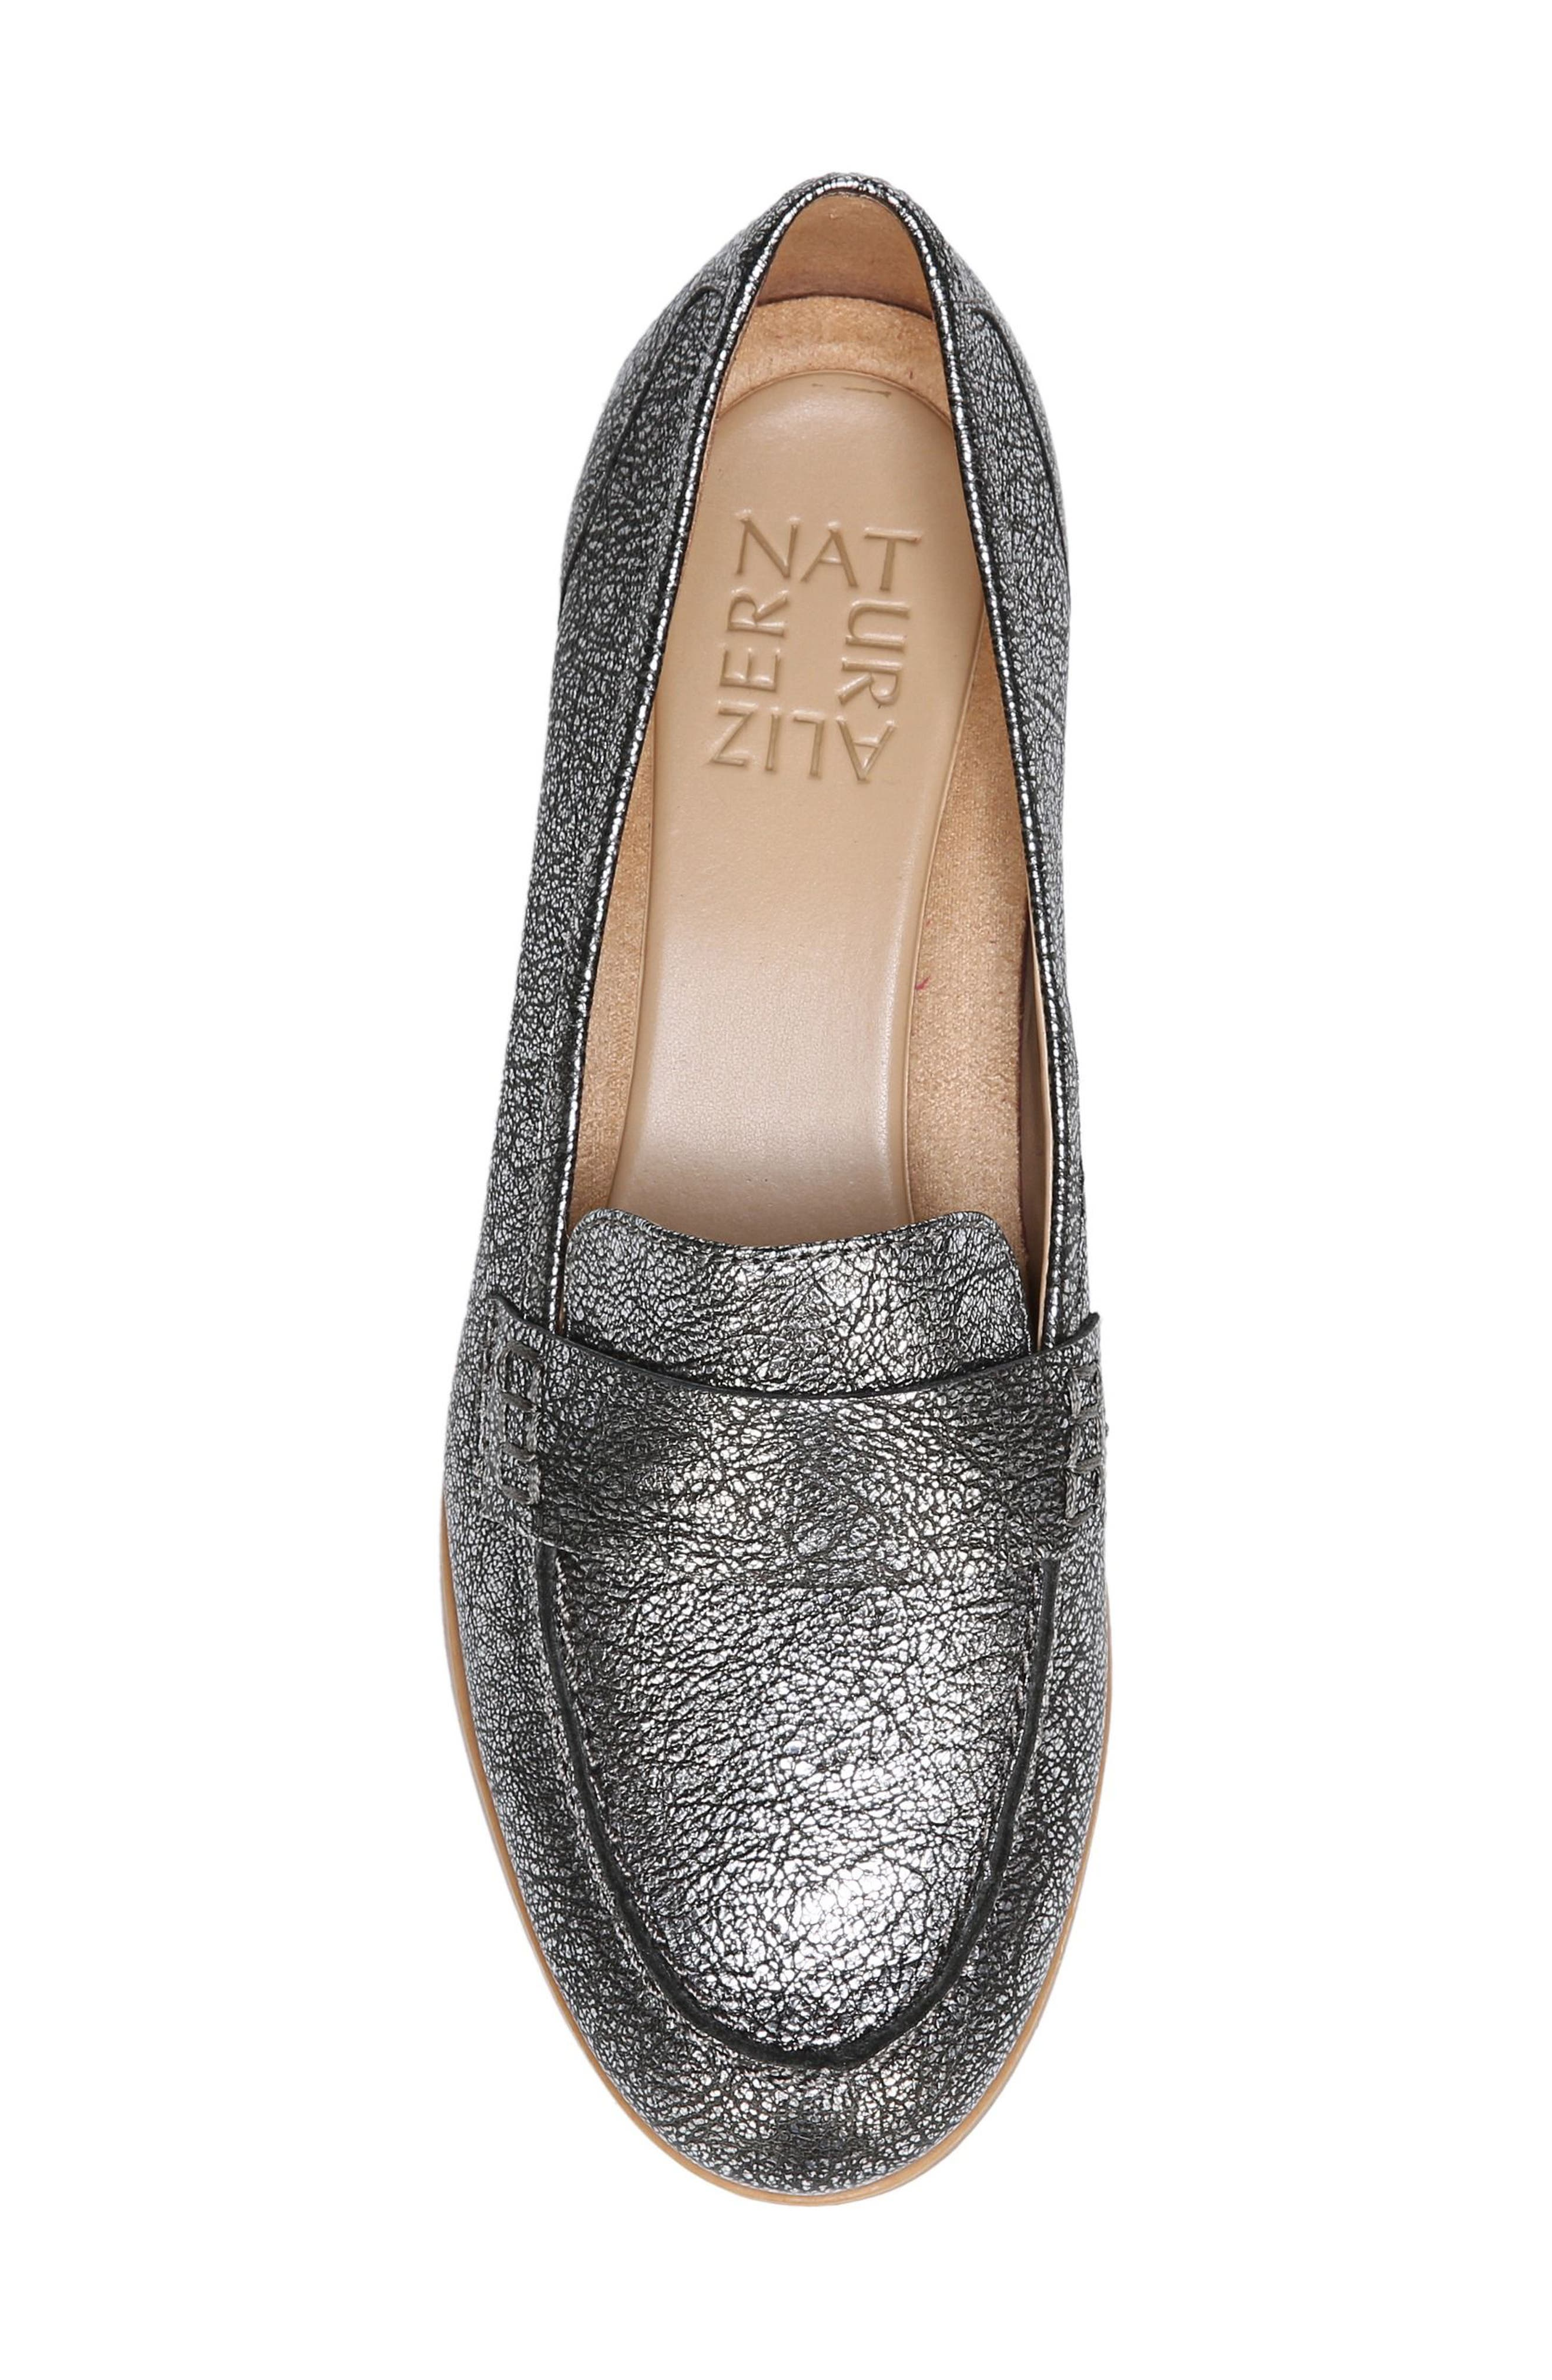 Veronica Loafer,                             Alternate thumbnail 5, color,                             Silver Leather